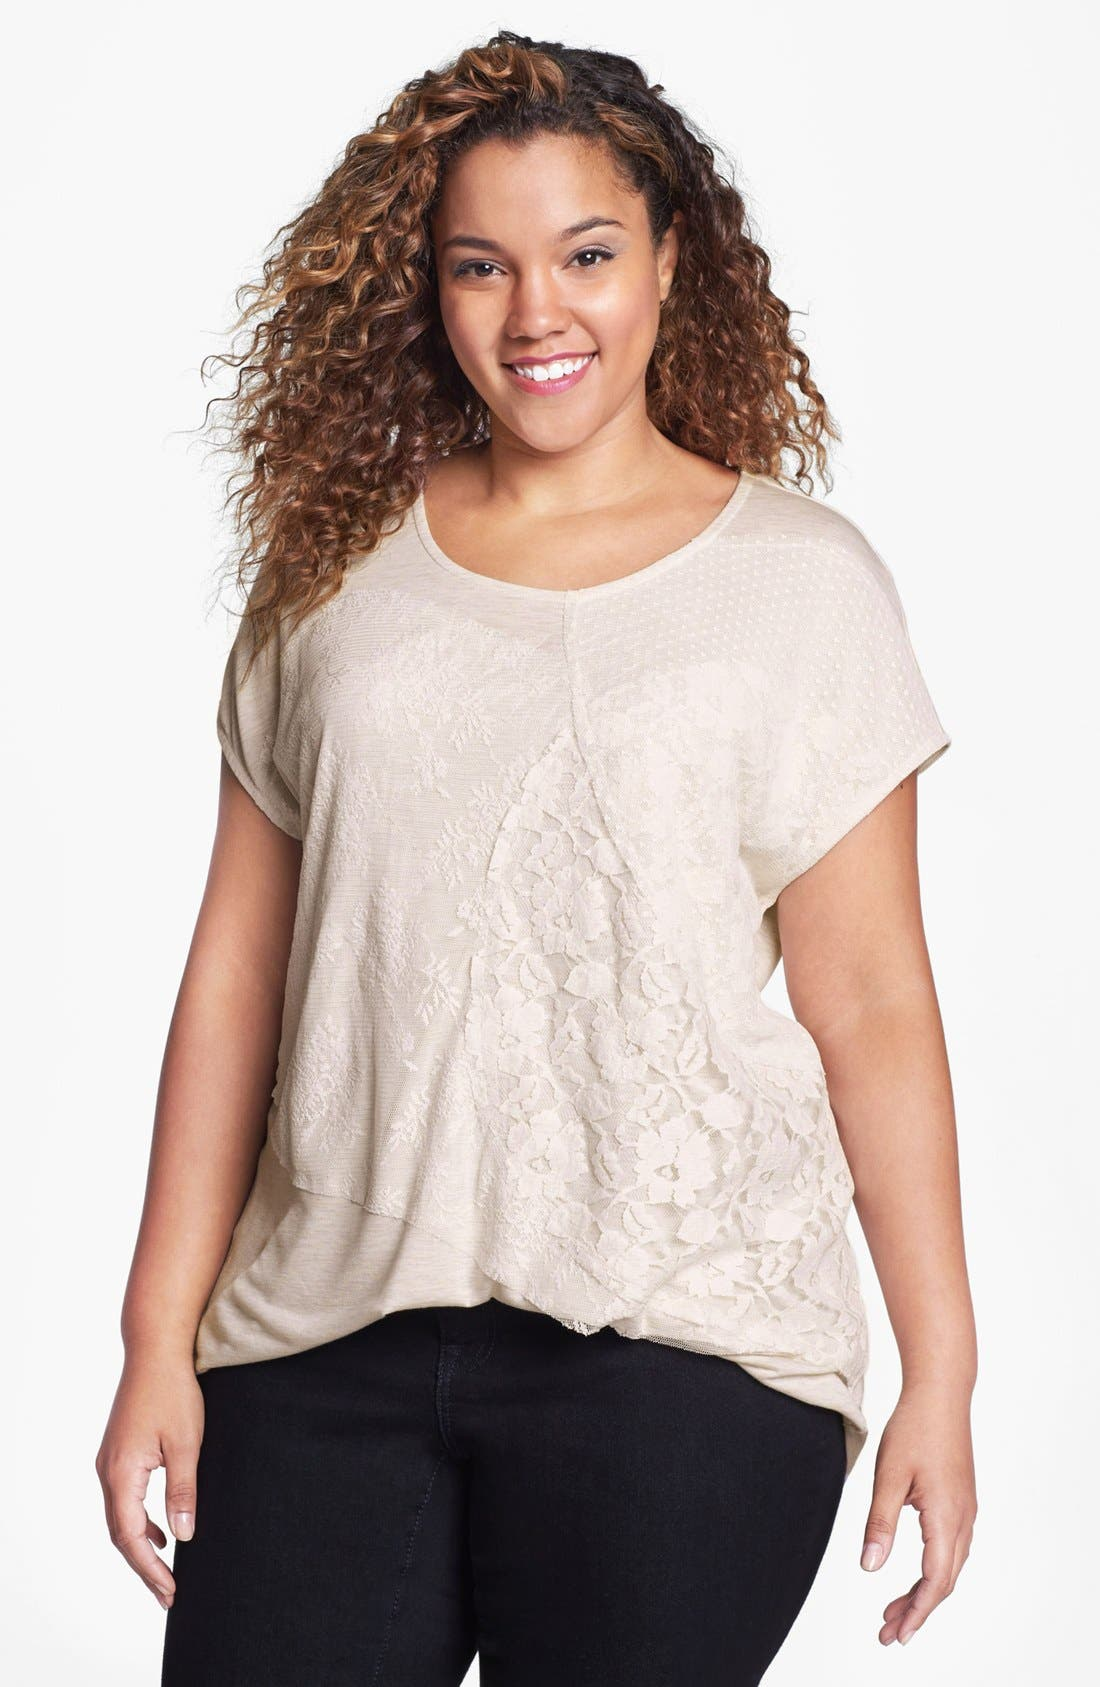 Alternate Image 1 Selected - Kische Embellished Lace Overlay Top (Plus Size)